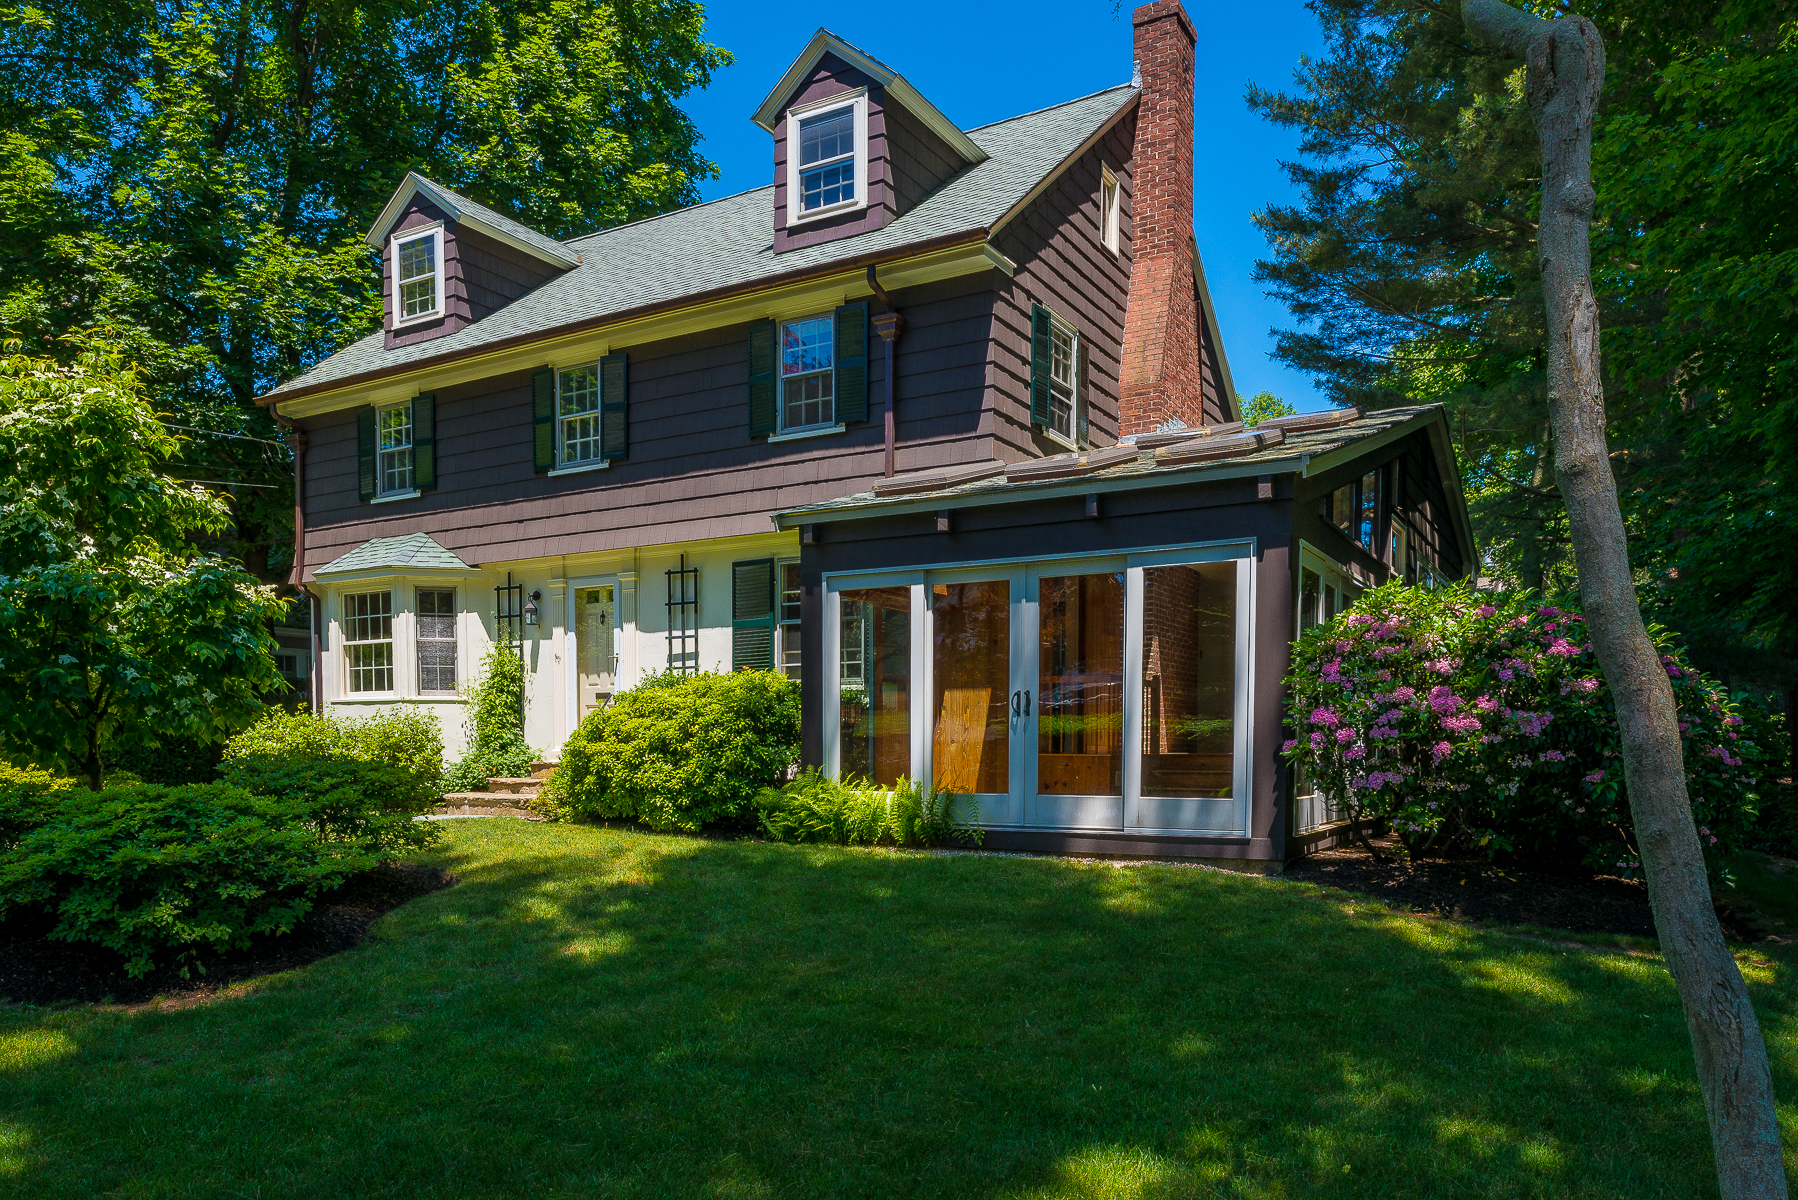 Single Family Home for Sale at Classic Beach Bluff Neighborhood Home With 5 Bedrooms 50 Bradlee Avenue Swampscott, Massachusetts, 01907 United States